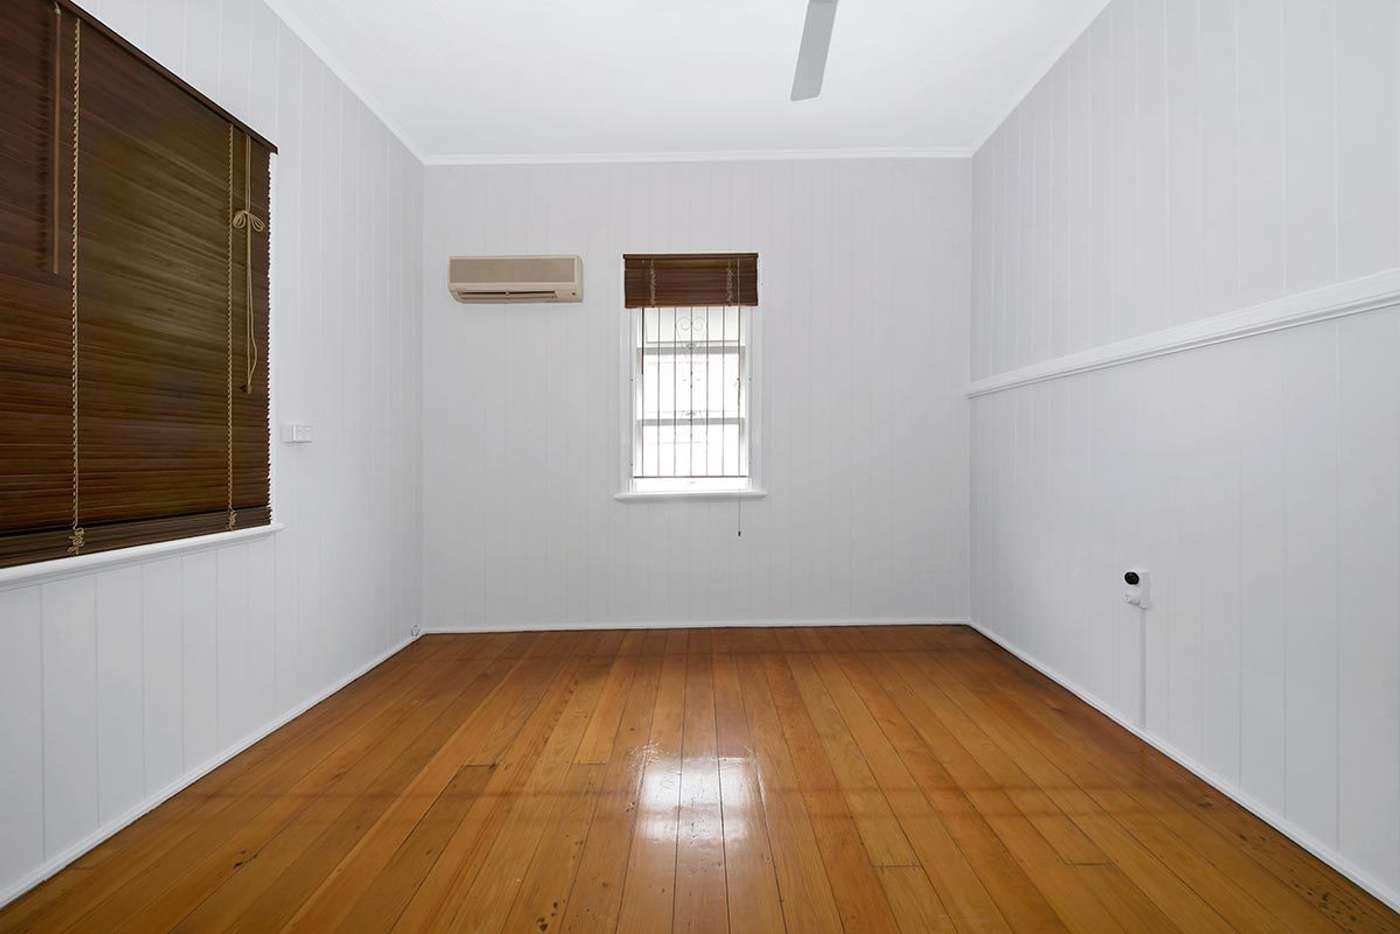 Sixth view of Homely house listing, 64 Prospect Terrace, Kelvin Grove QLD 4059